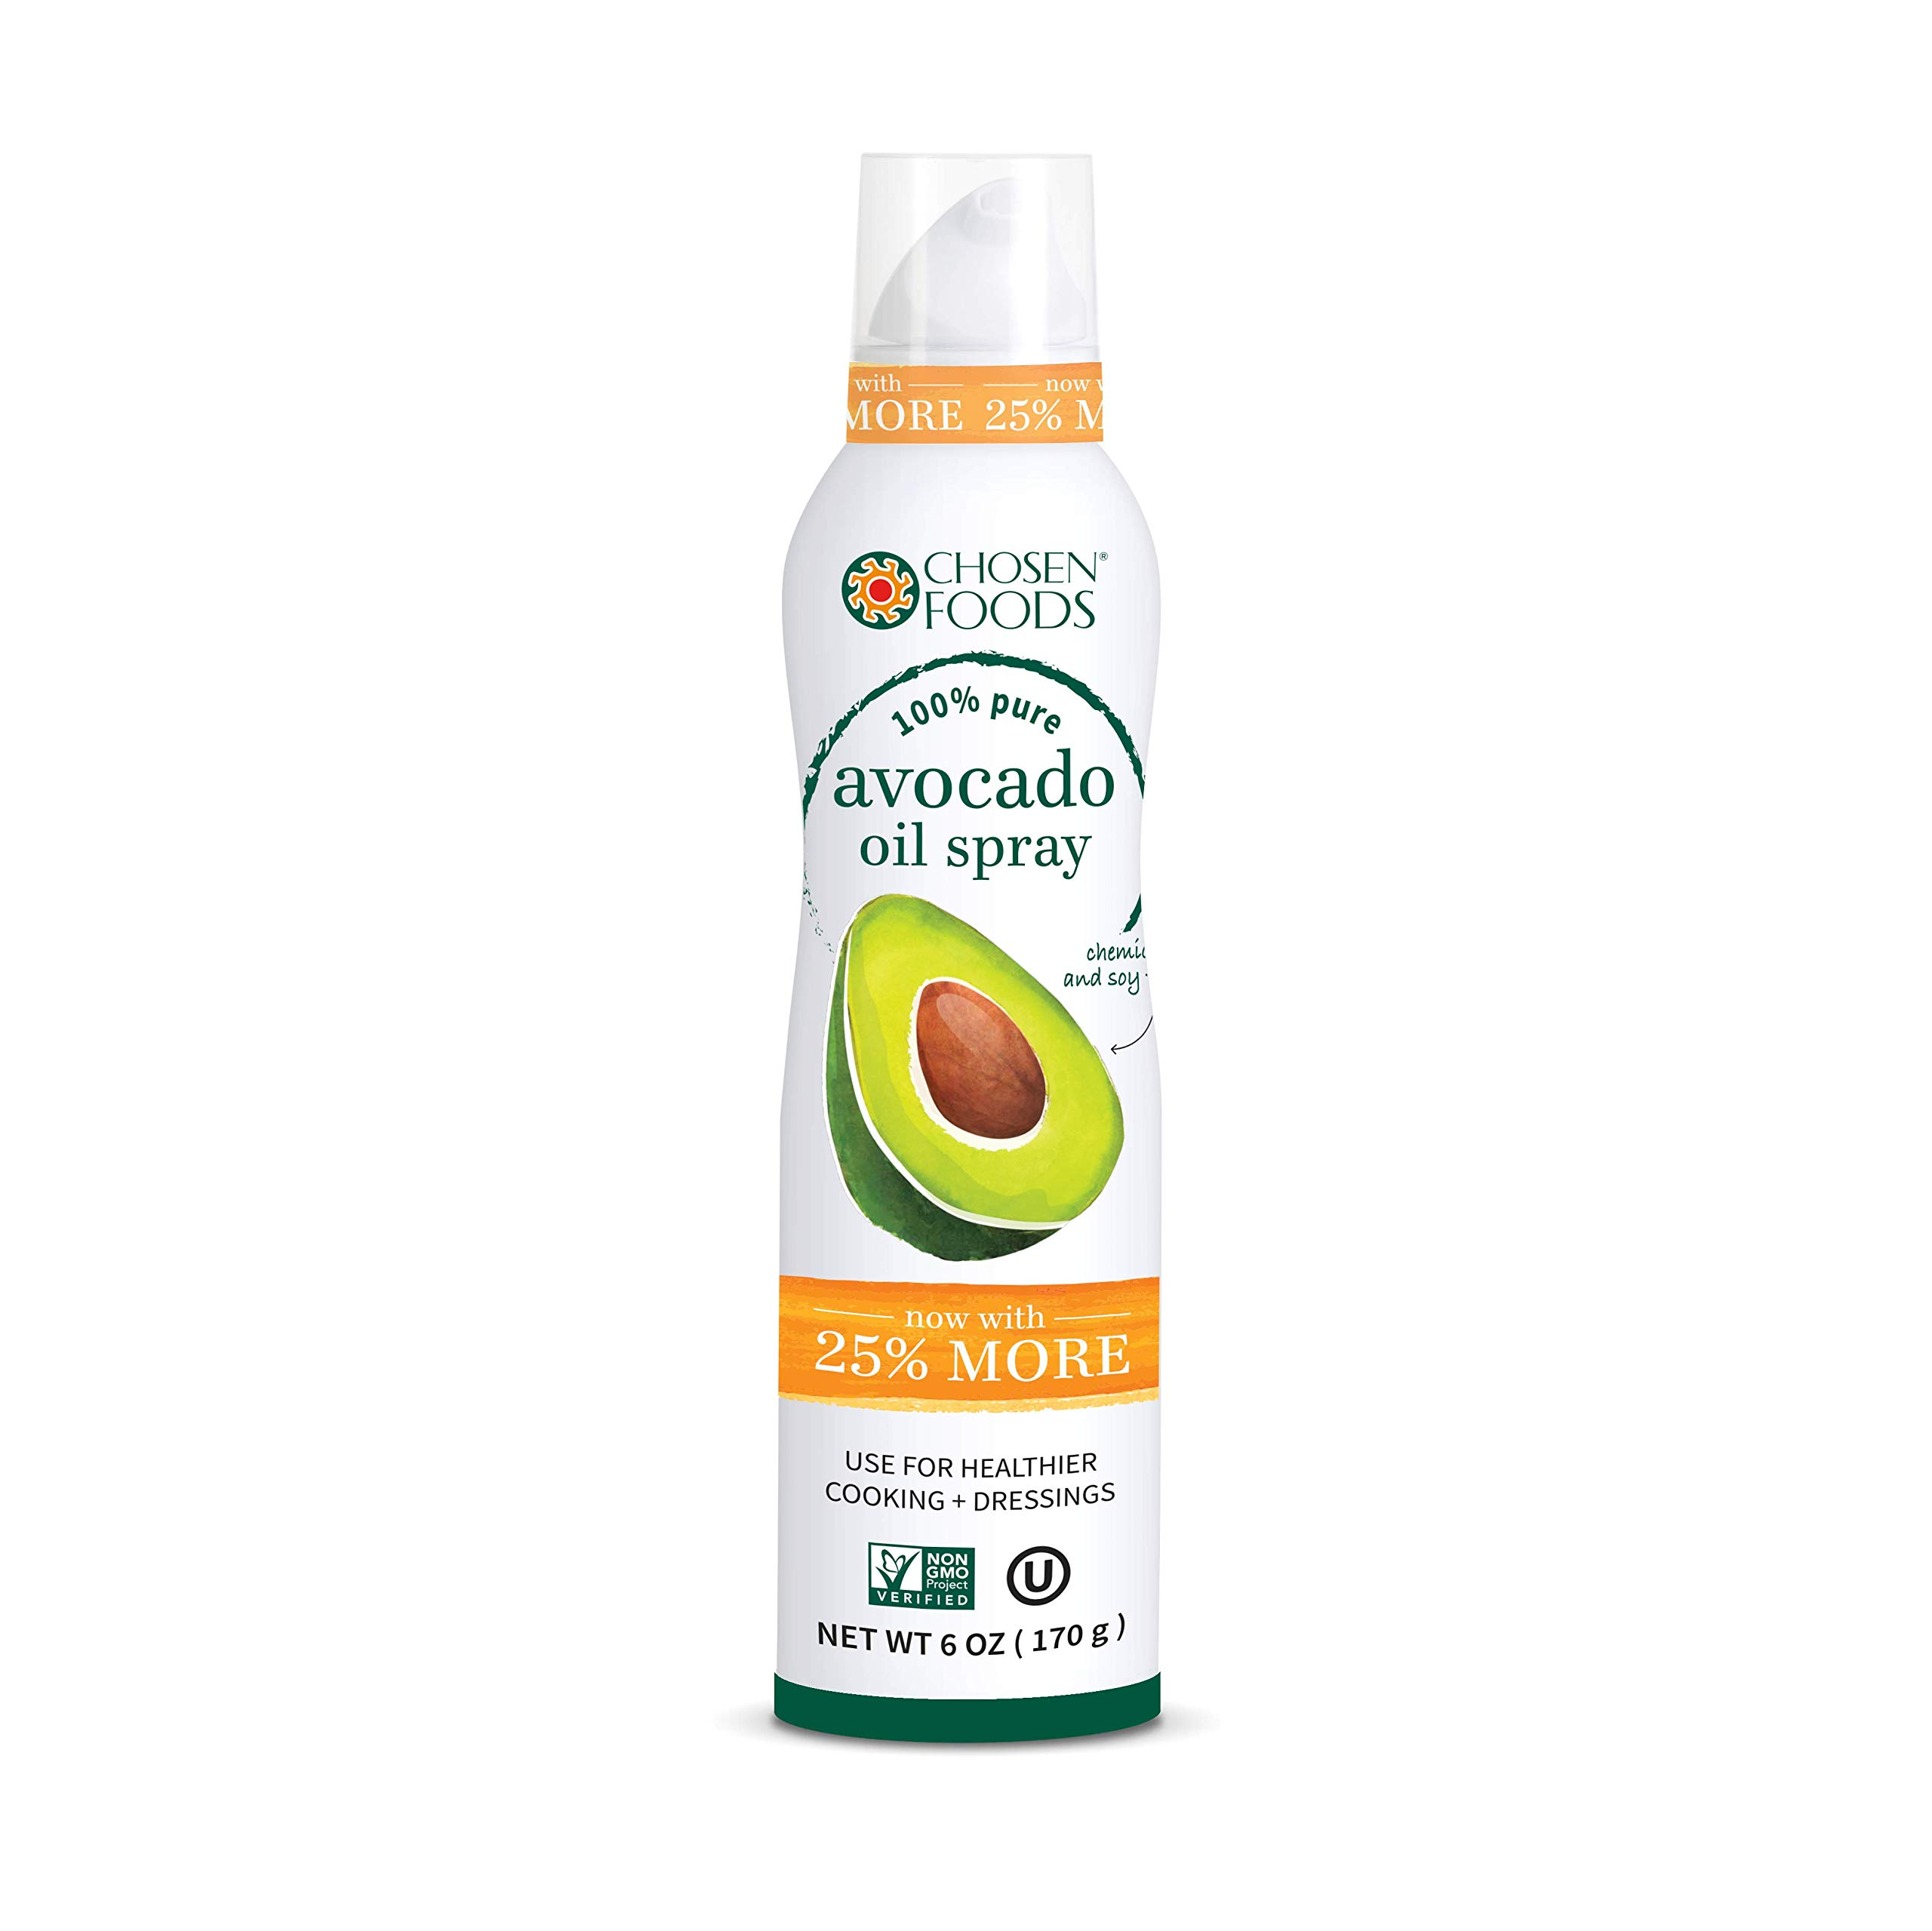 Chosen Foods 100% Pure Avocado Oil Spray 4.7 oz. (10 Pack), Non-GMO, 500° F Smoke Point, Propellant-Free, Air Pressure Only for High-Heat Cooking, Baking and Frying